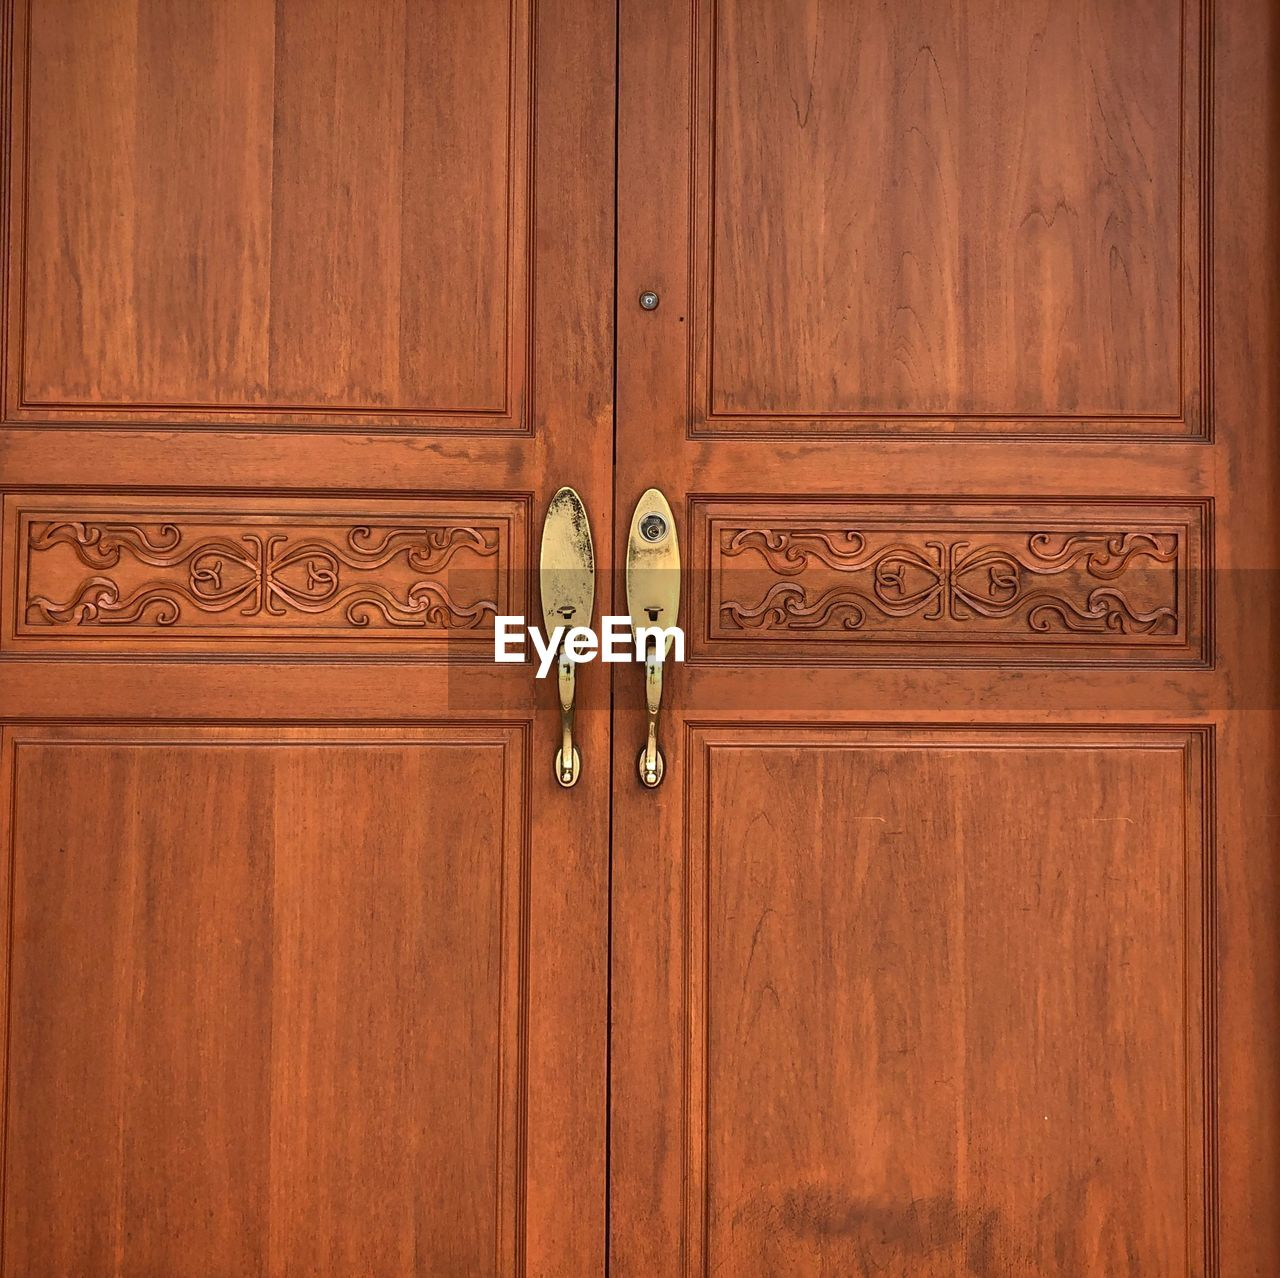 wood - material, door, entrance, no people, knob, closed, brown, protection, security, wood, safety, doorknob, day, full frame, pattern, indoors, architecture, close-up, handle, ornate, wood grain, carving